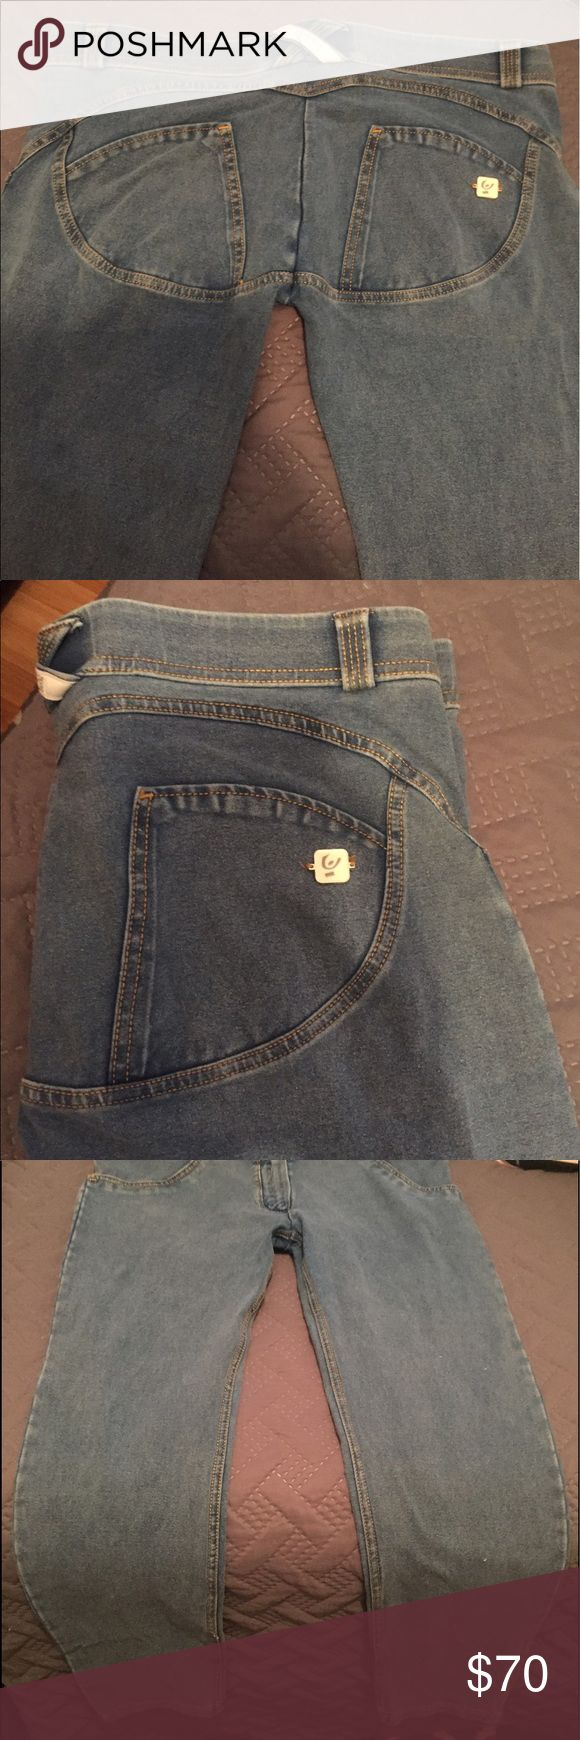 Freddy wr.up jeans Freddy wrup jeans. Sewn to accentuate the booty. These really make the butt look amazing just like booty scrunch does in workout leggings. Worn twice. Washed but not dried in dryer. Air dried. Elastic is in phenomenal shape. Freddy Jeans Ankle & Cropped